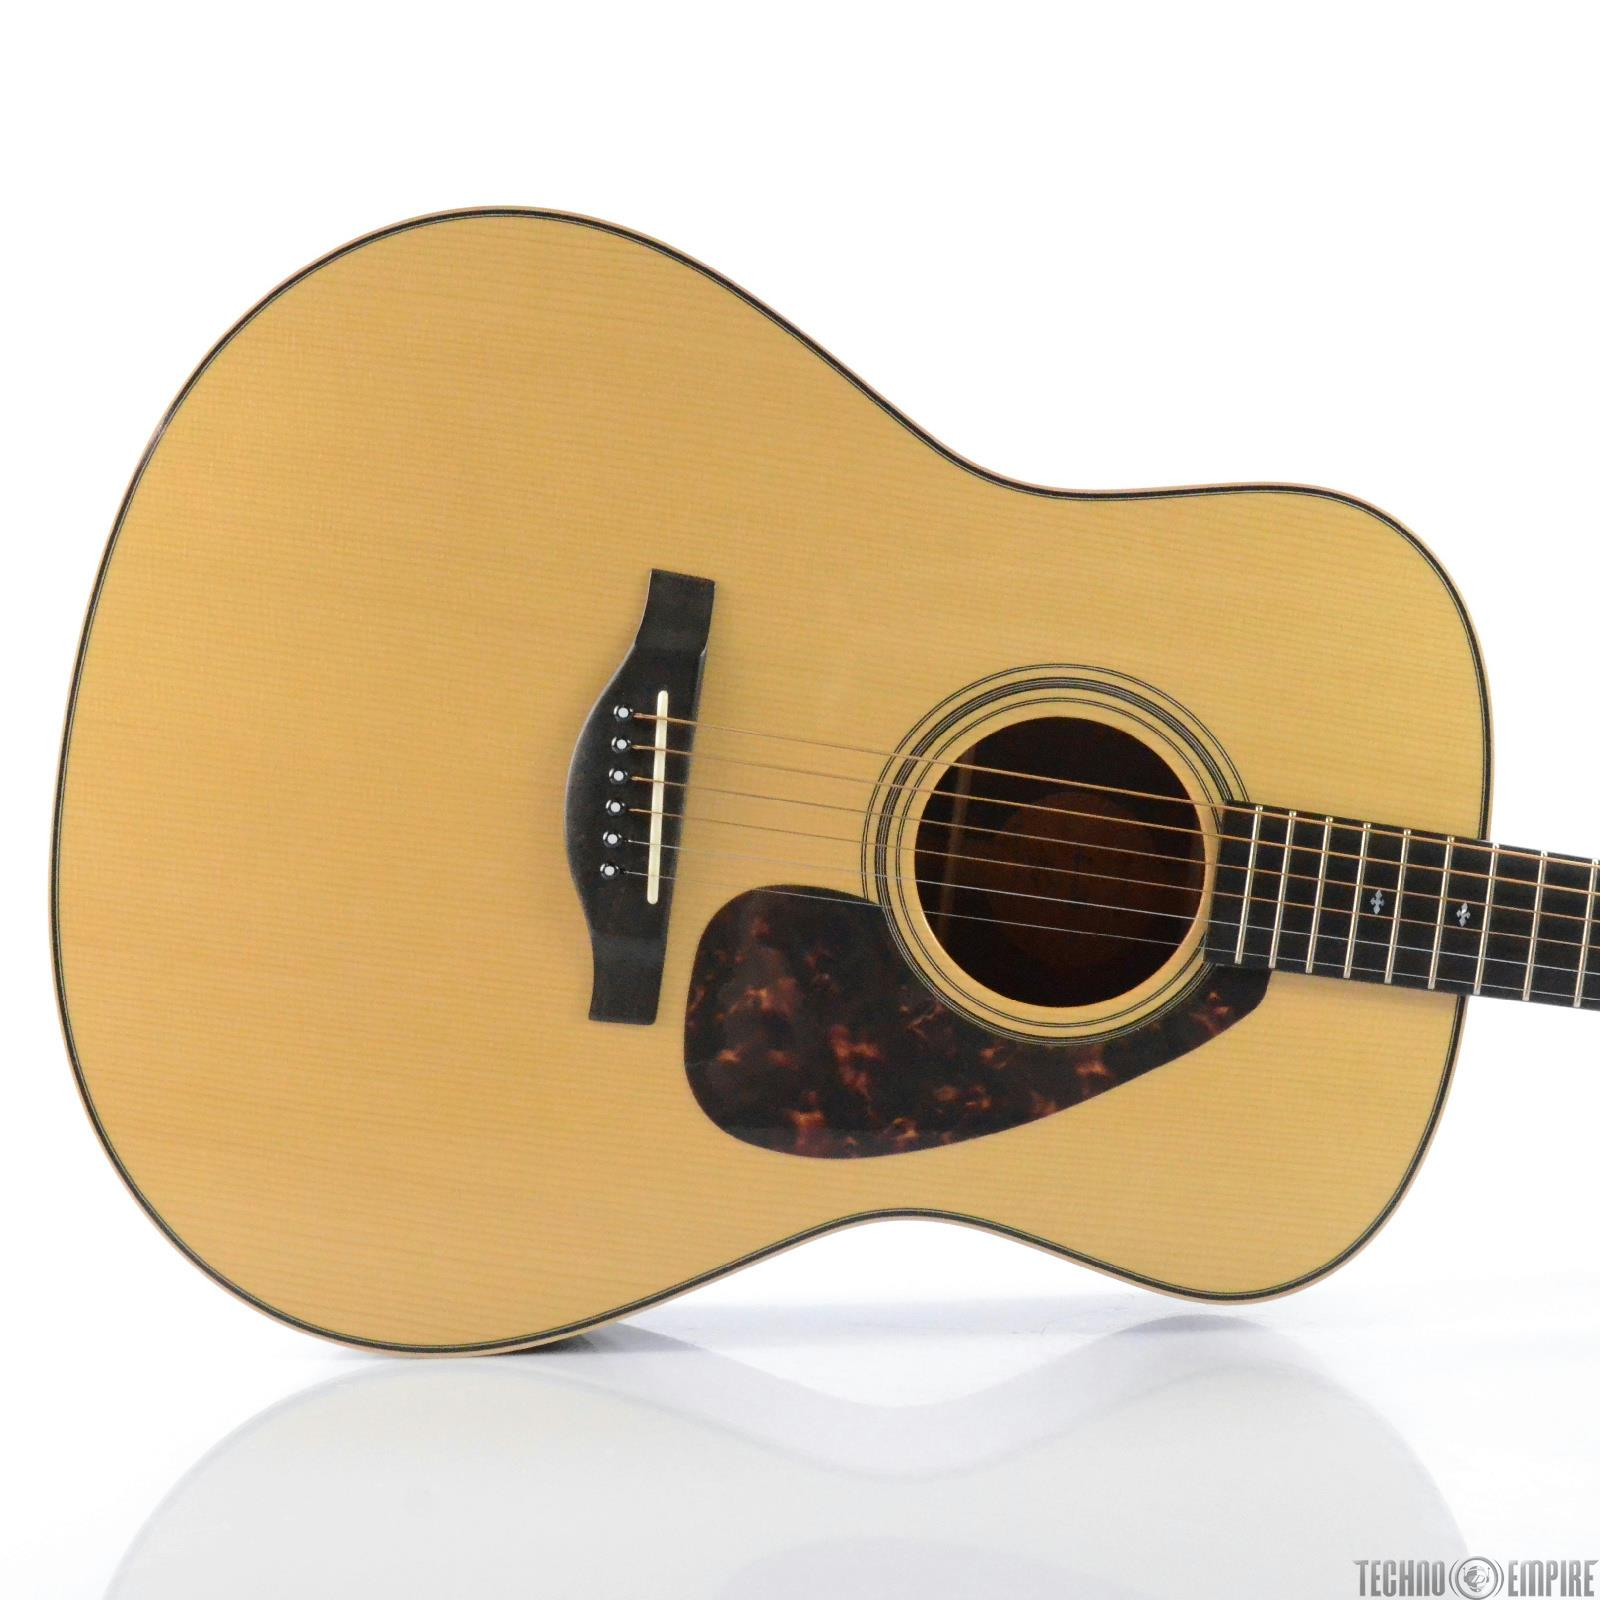 Yamaha ll26 l series acoustic guitar with hard case 28226 for Yamaha l series guitars